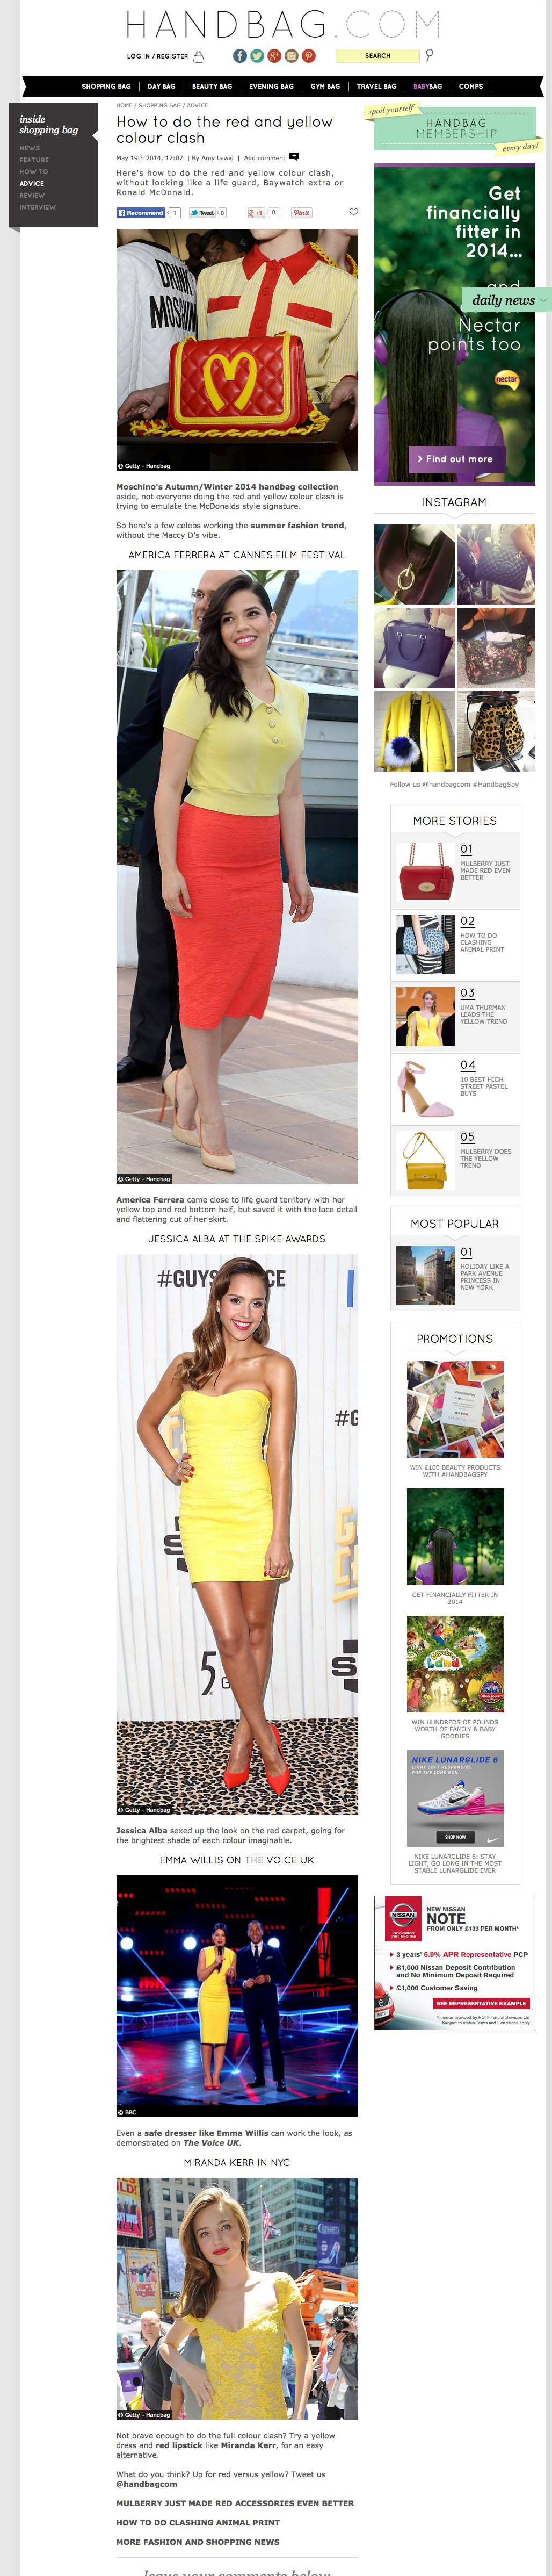 How_to_do_the_red_and_yellow_colour_clash_-_Shopping_Bag_Advice_-_handbag.com_-_2014-08-19_17.54.34.png